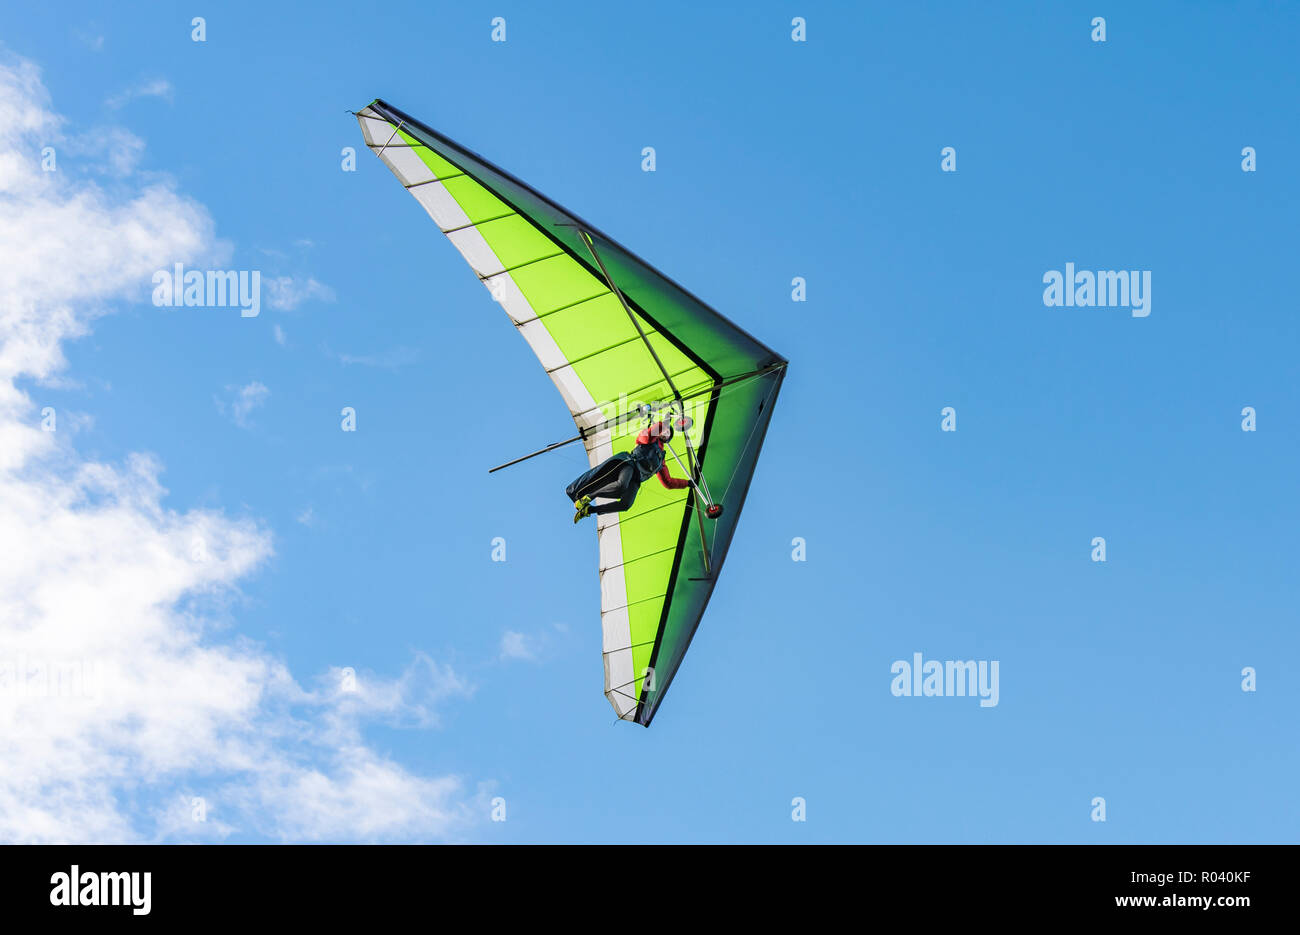 Man hang gliding in Autumn with blue sky at the South Downs in East Sussex, England, UK. - Stock Image